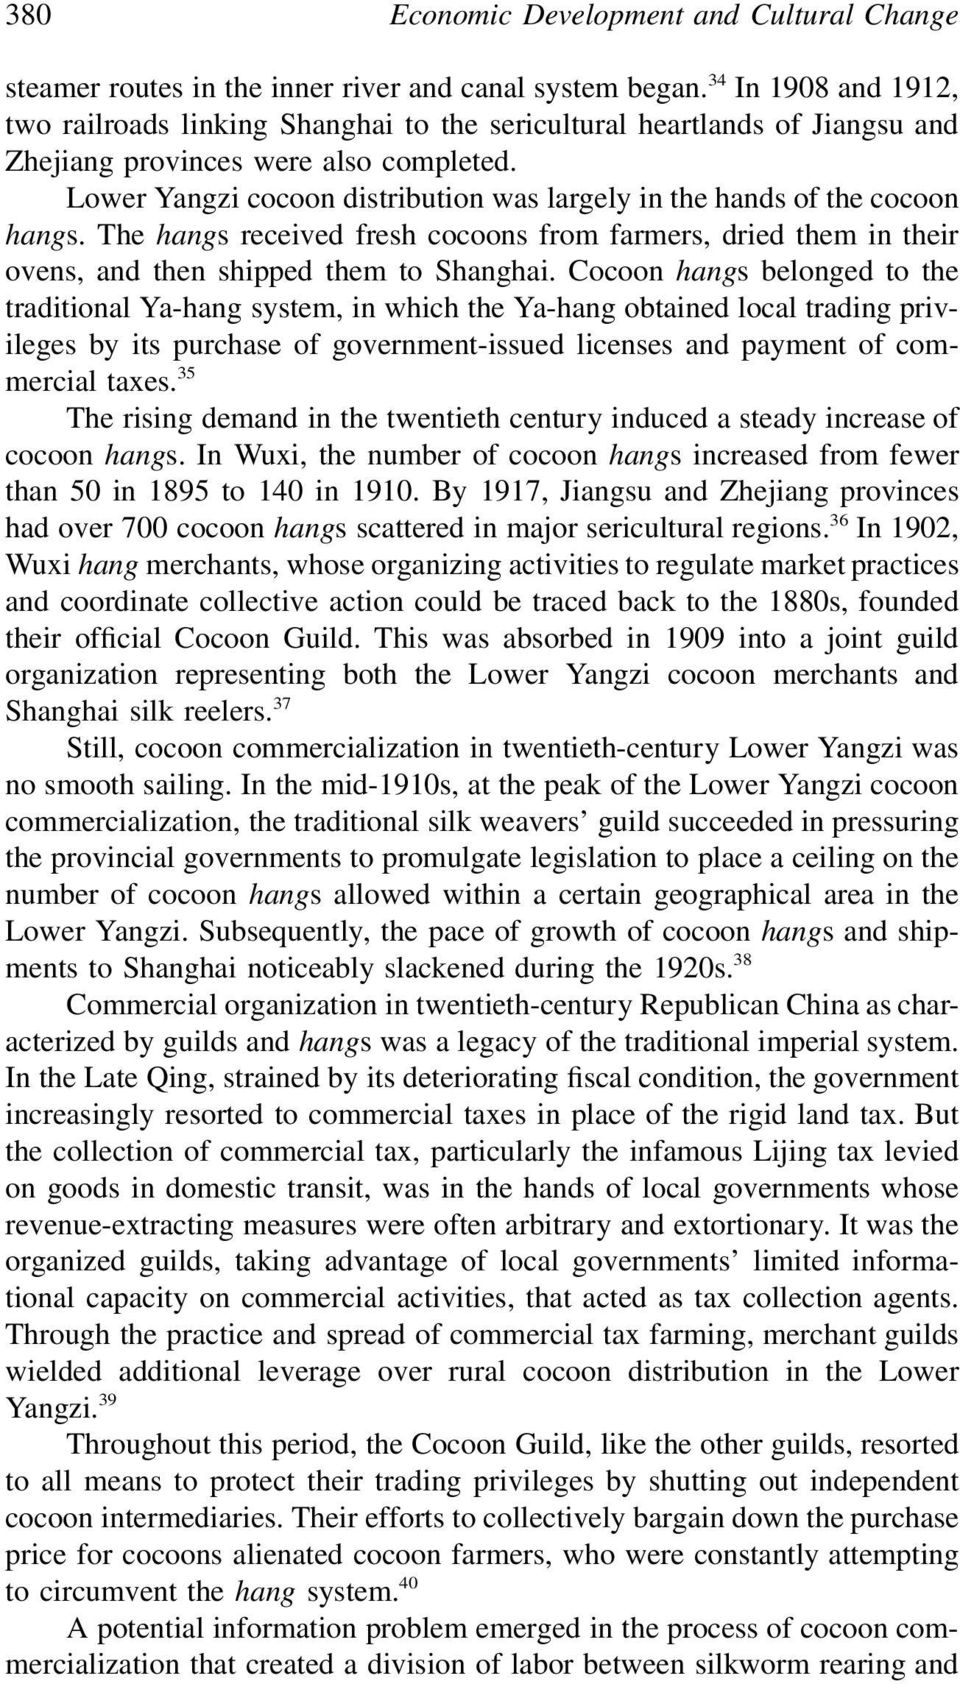 Lower Yangzi cocoon distribution was largely in the hands of the cocoon hangs. The hangs received fresh cocoons from farmers, dried them in their ovens, and then shipped them to Shanghai.